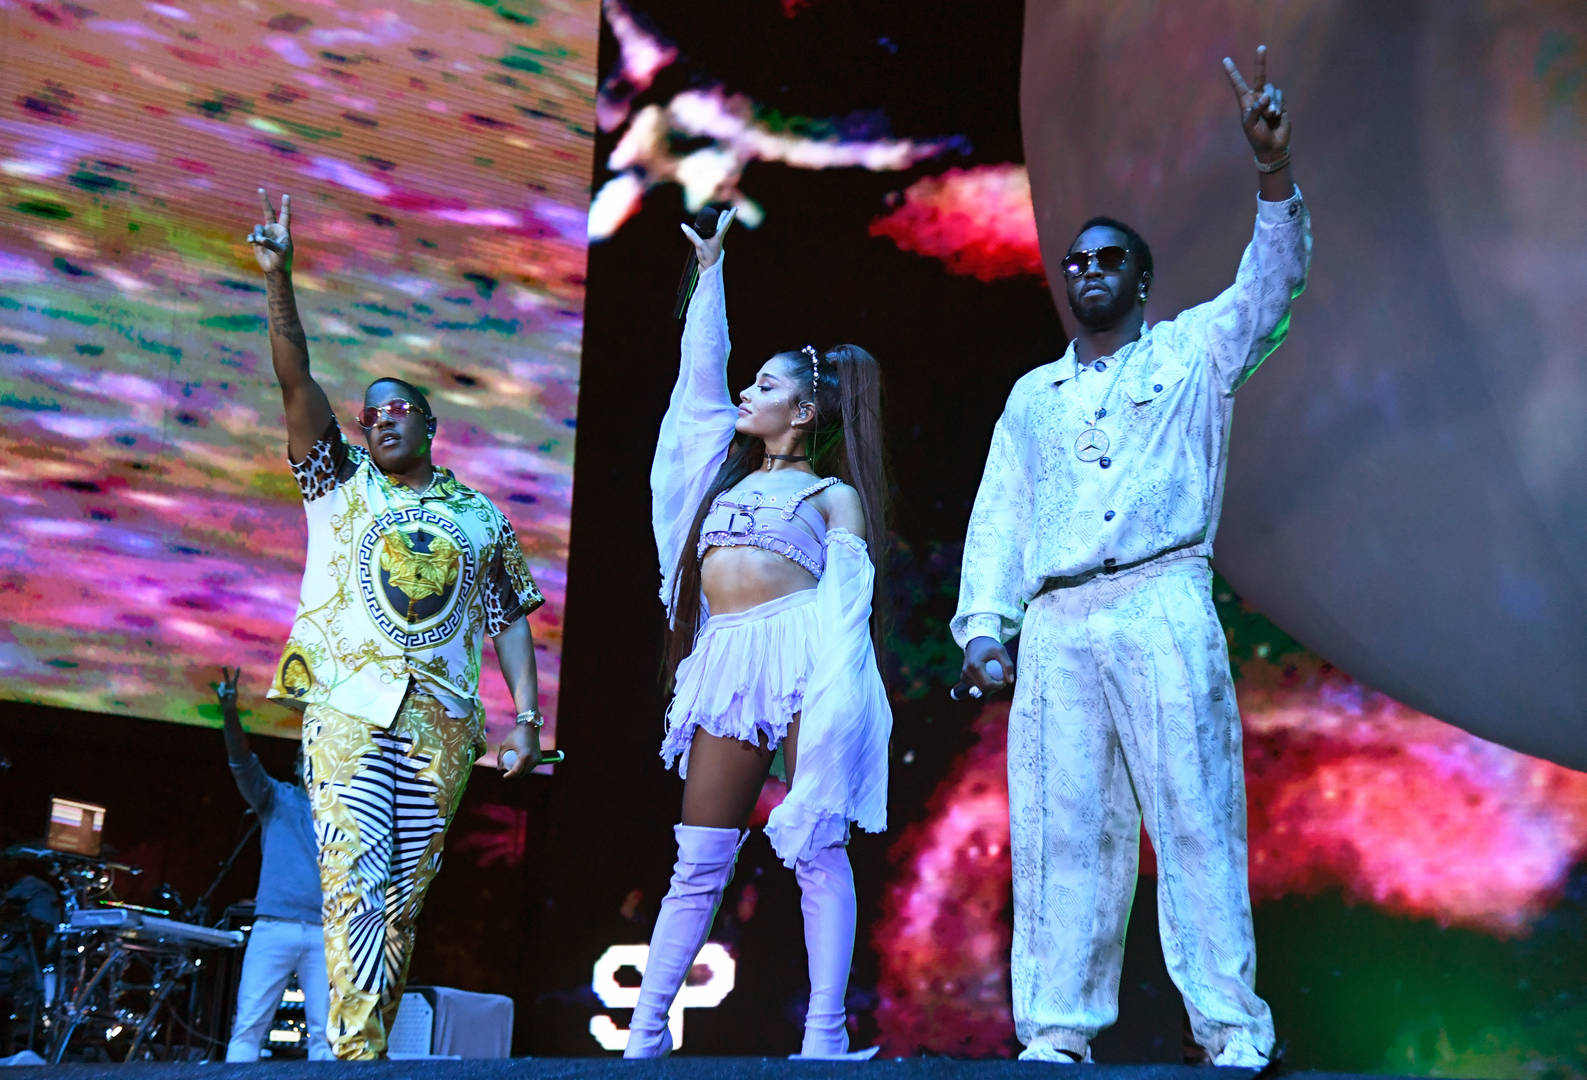 Ariana Grande Welcomes Nicki Minaj, NSYNC & Diddy Onstage During Coachella Set